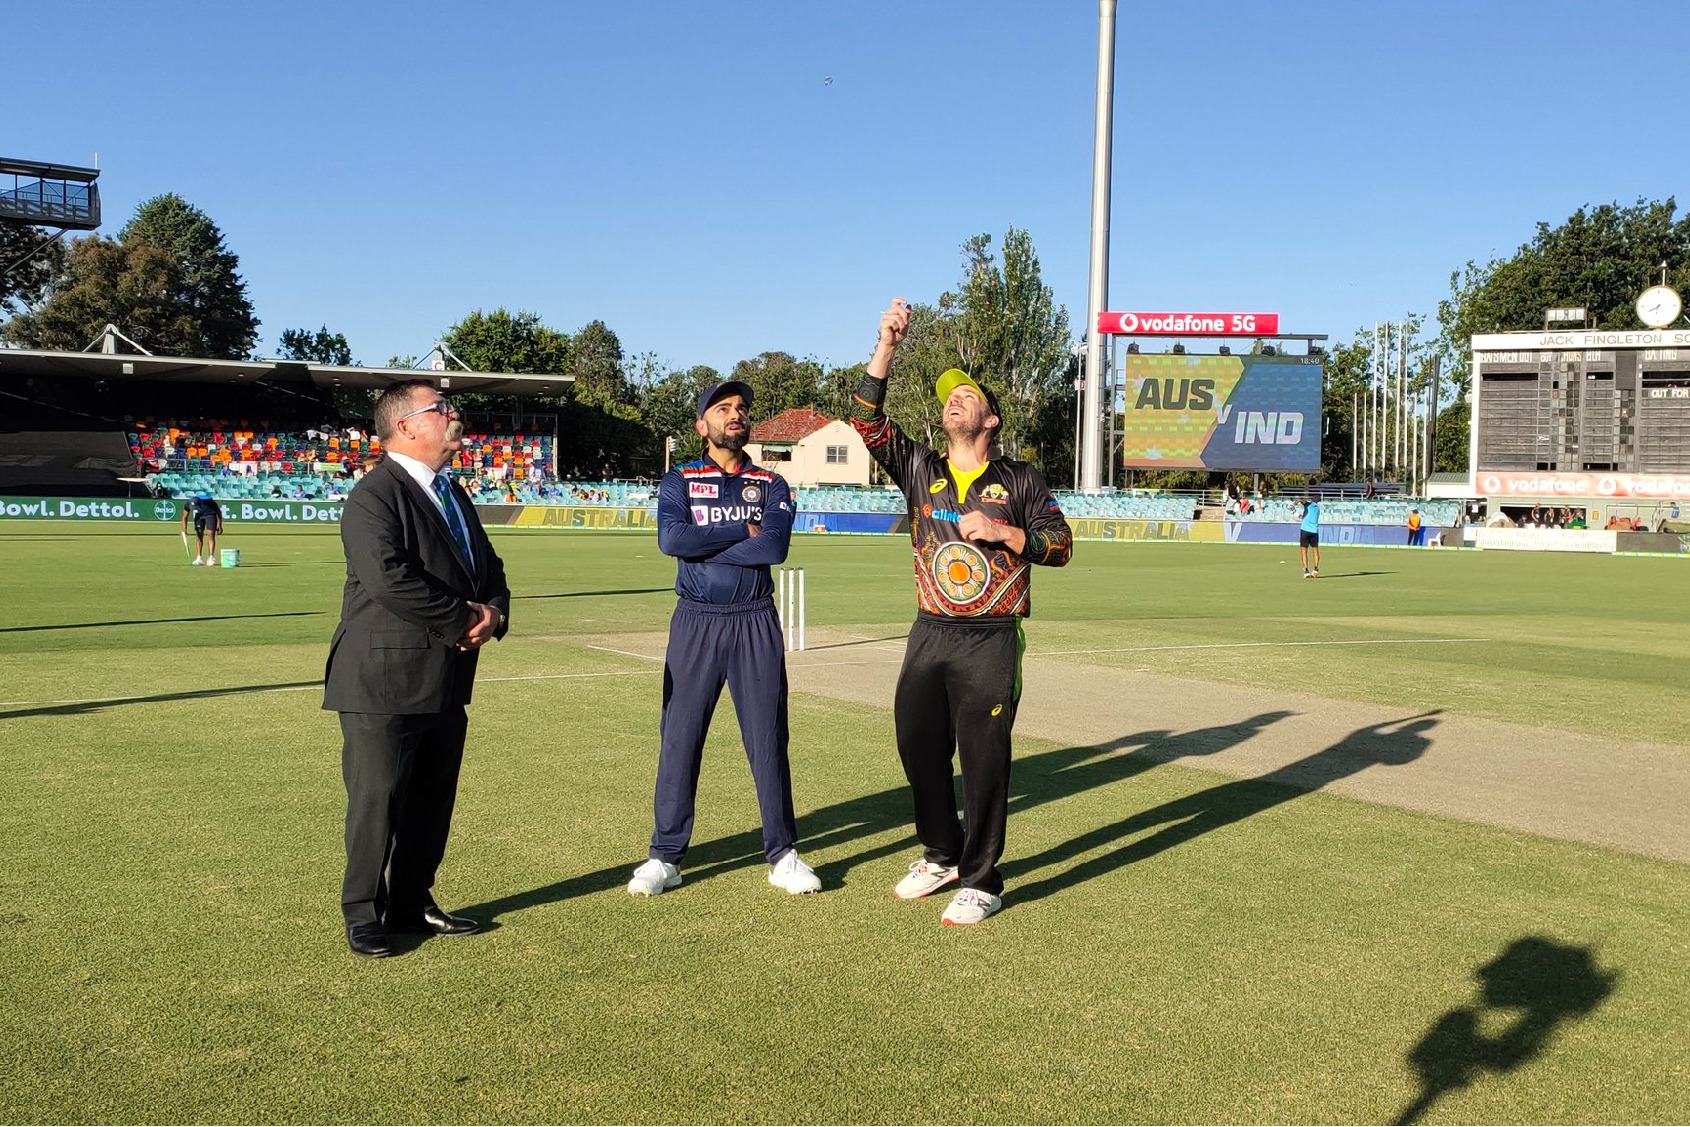 Australia won the toss and elected bowl first against Team India